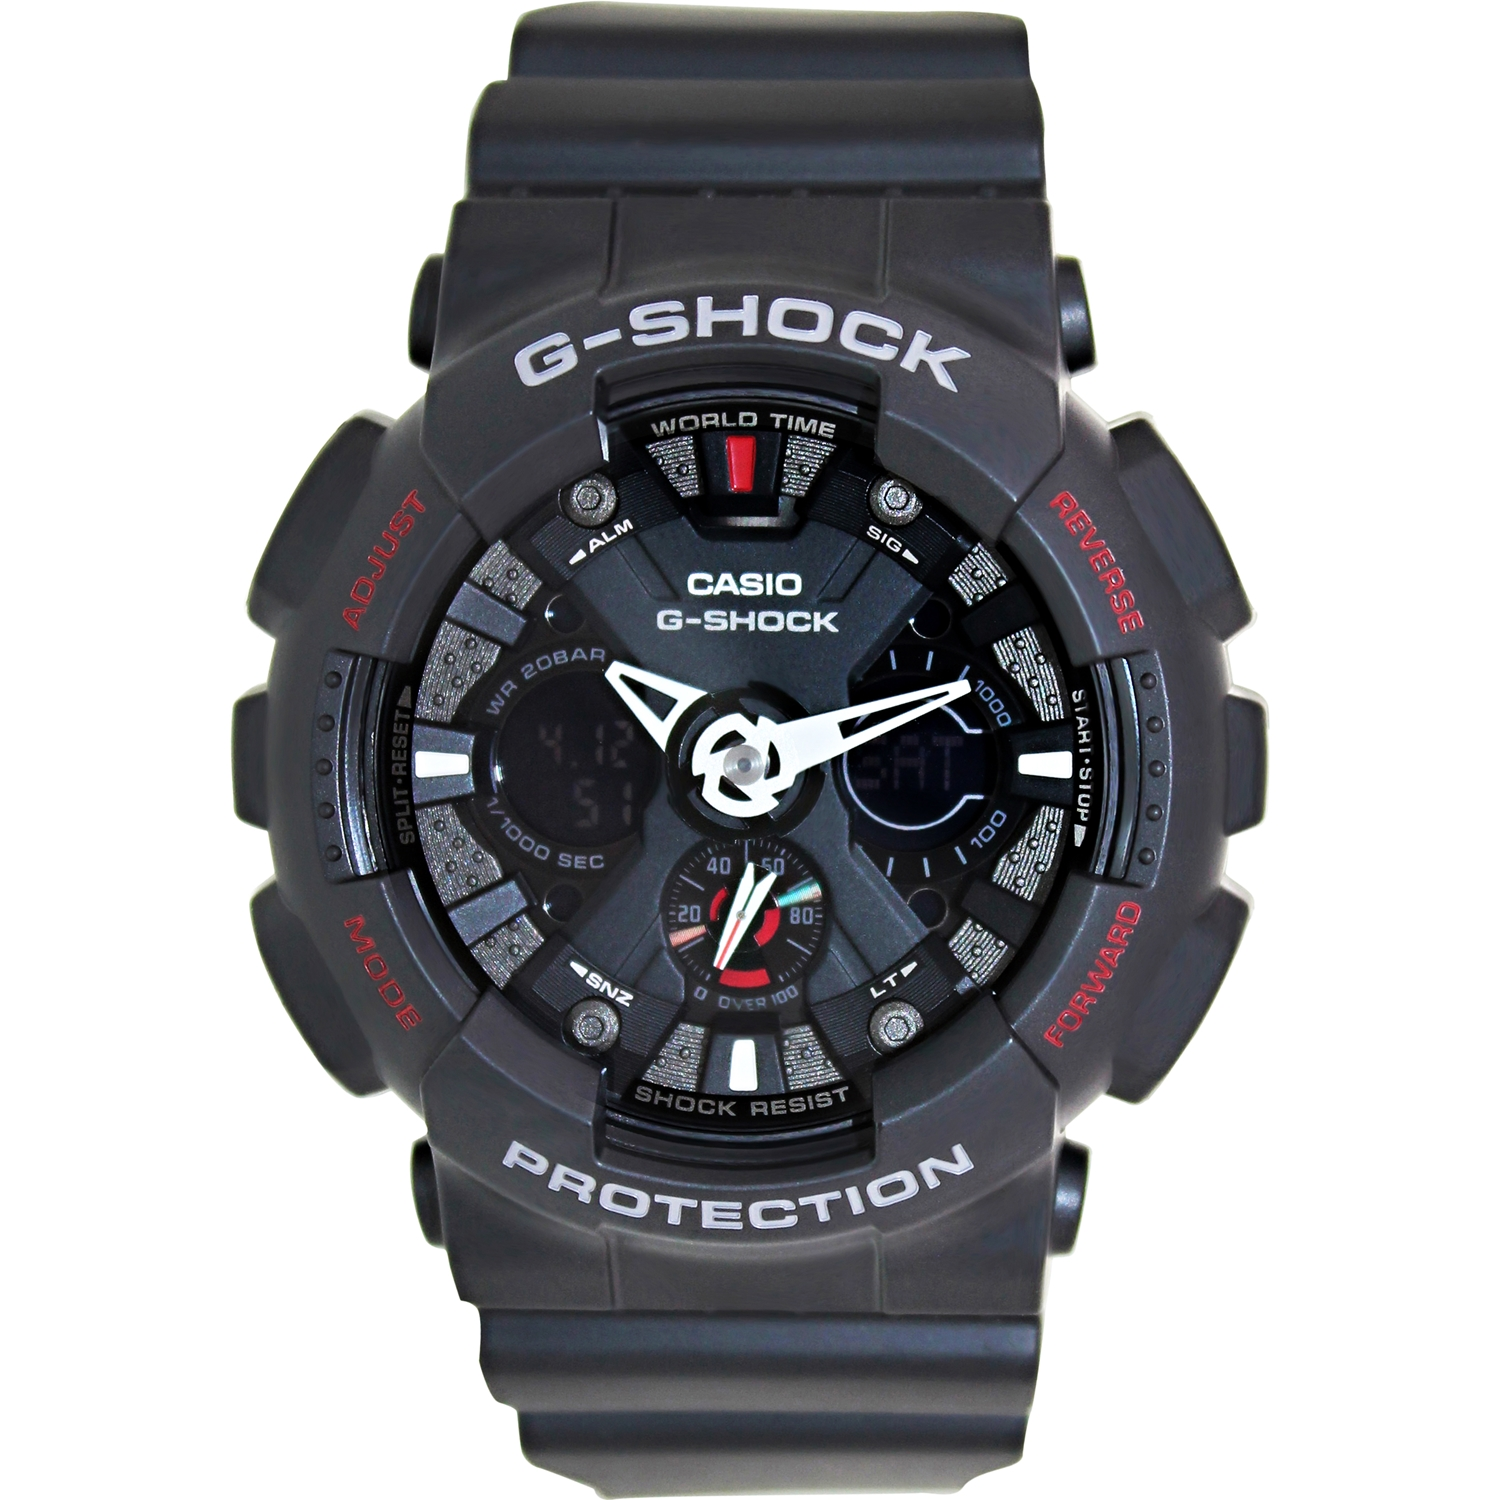 Casio Men's G-Shock GA120-1A Black Resin Quartz Fashion Watch